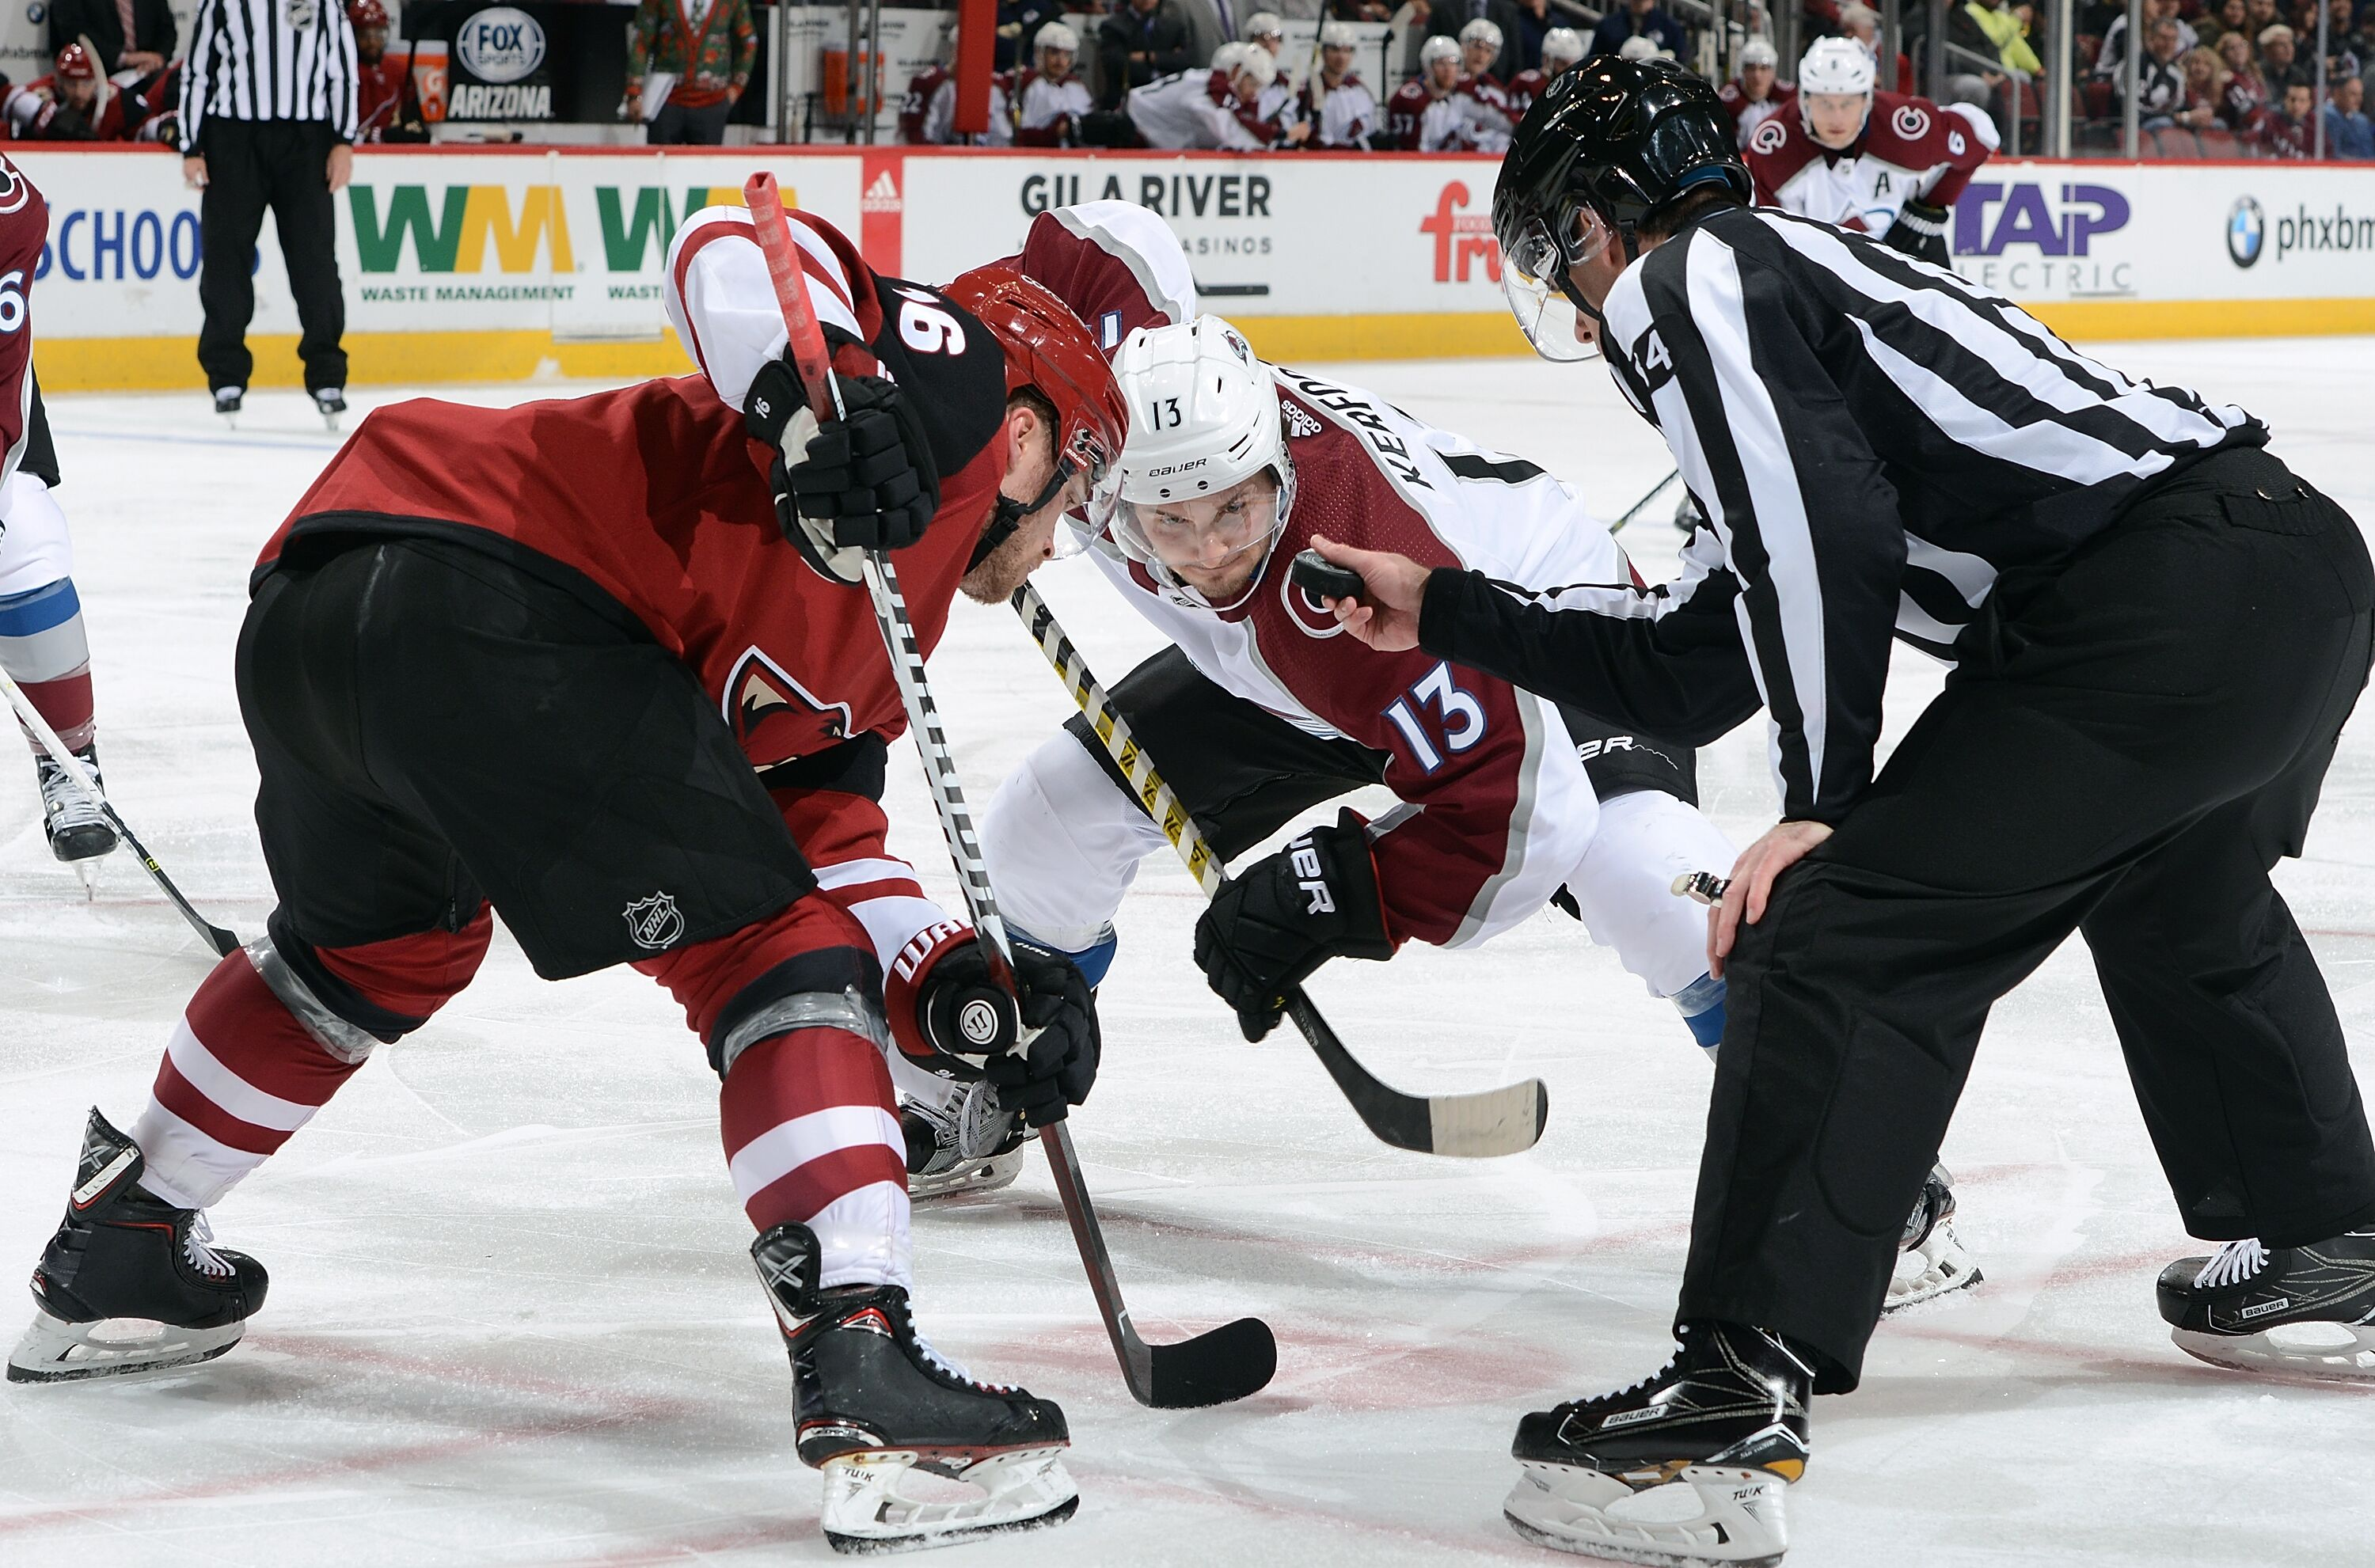 897867260-colorado-avalanche-v-arizona-coyotes.jpg